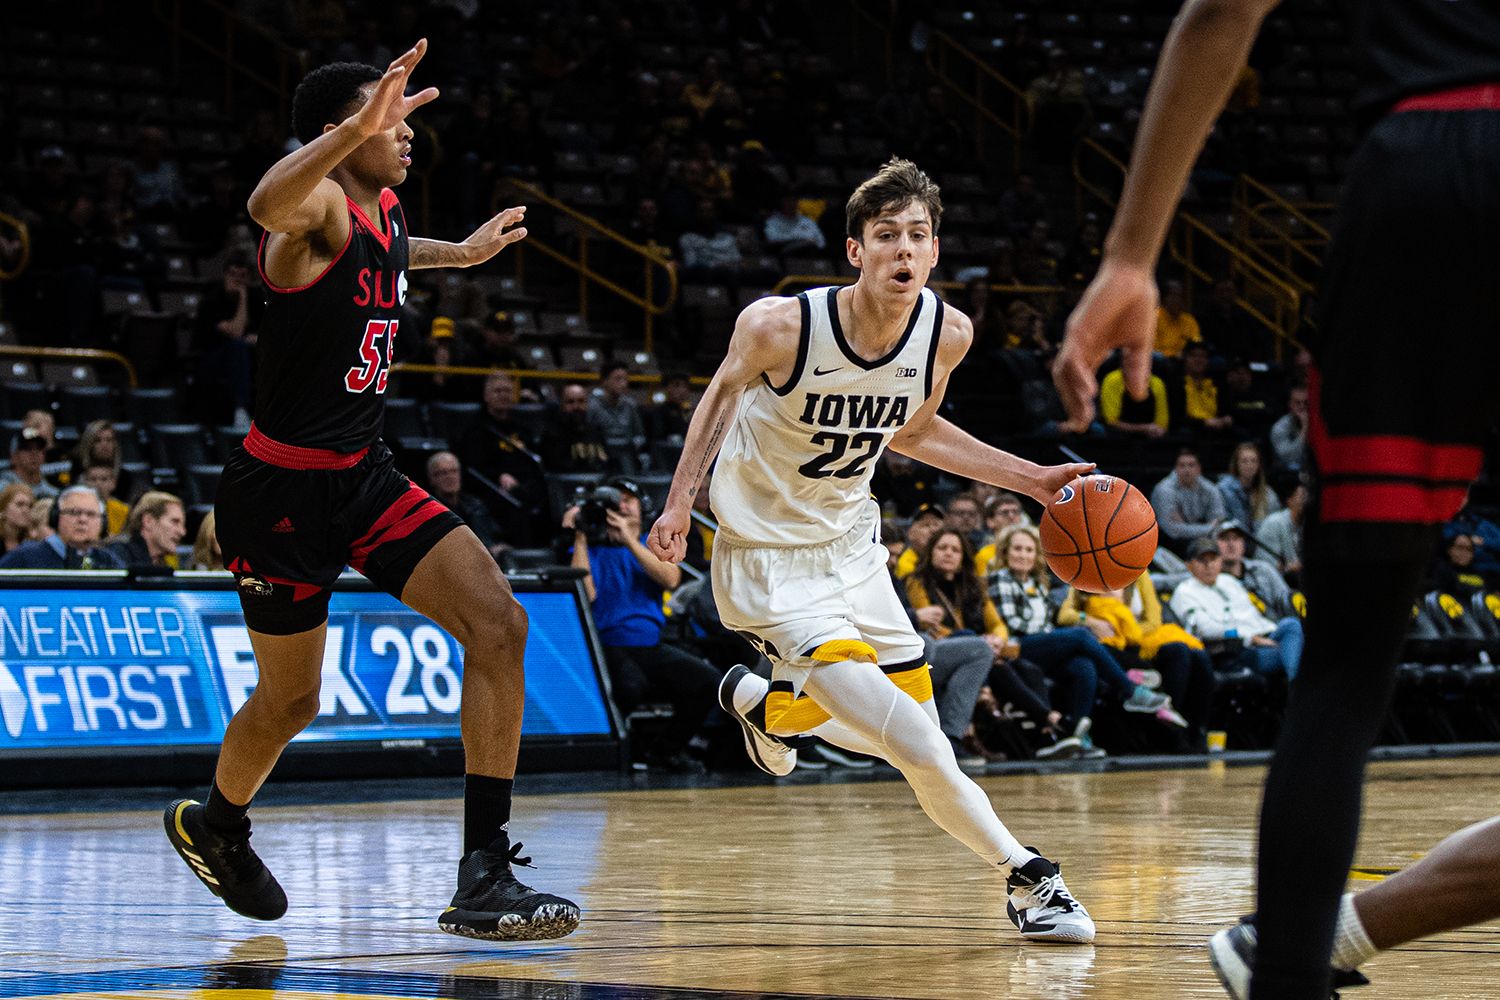 Iowa forward Patrick McCaffery drives to the rim during a men's basketball game between Iowa and Southern Illinois-Edwardsville at Carver-Hawkeye Arena on Friday, Nov. 8, 2019. The Hawkeyes defeated the Cougars, 87-60. (Shivansh Ahuja/The Daily Iowan)